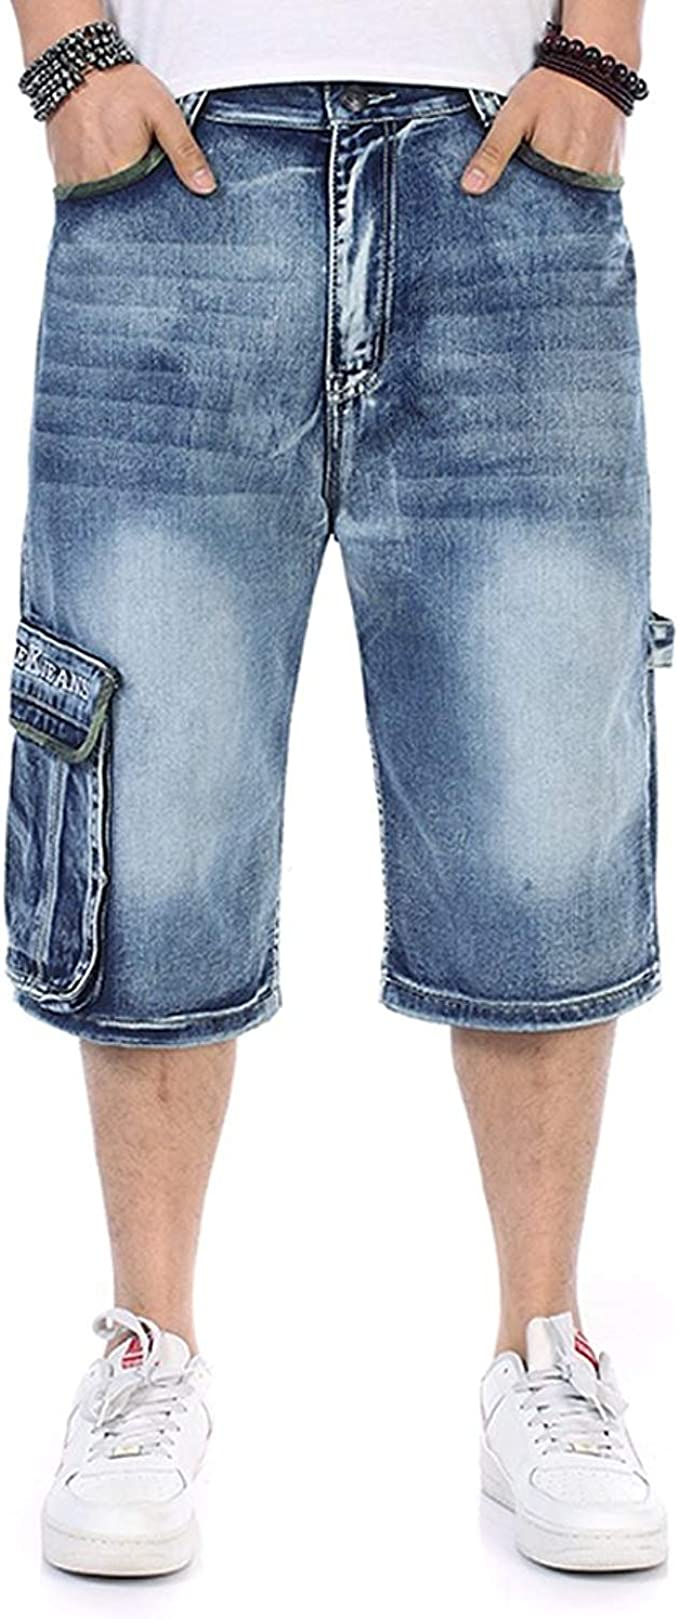 Men's Jeans Shorts Cargo Denim Shorts Relaxed Fit Big and Tall Loose Casual Plus Size 30W 46W